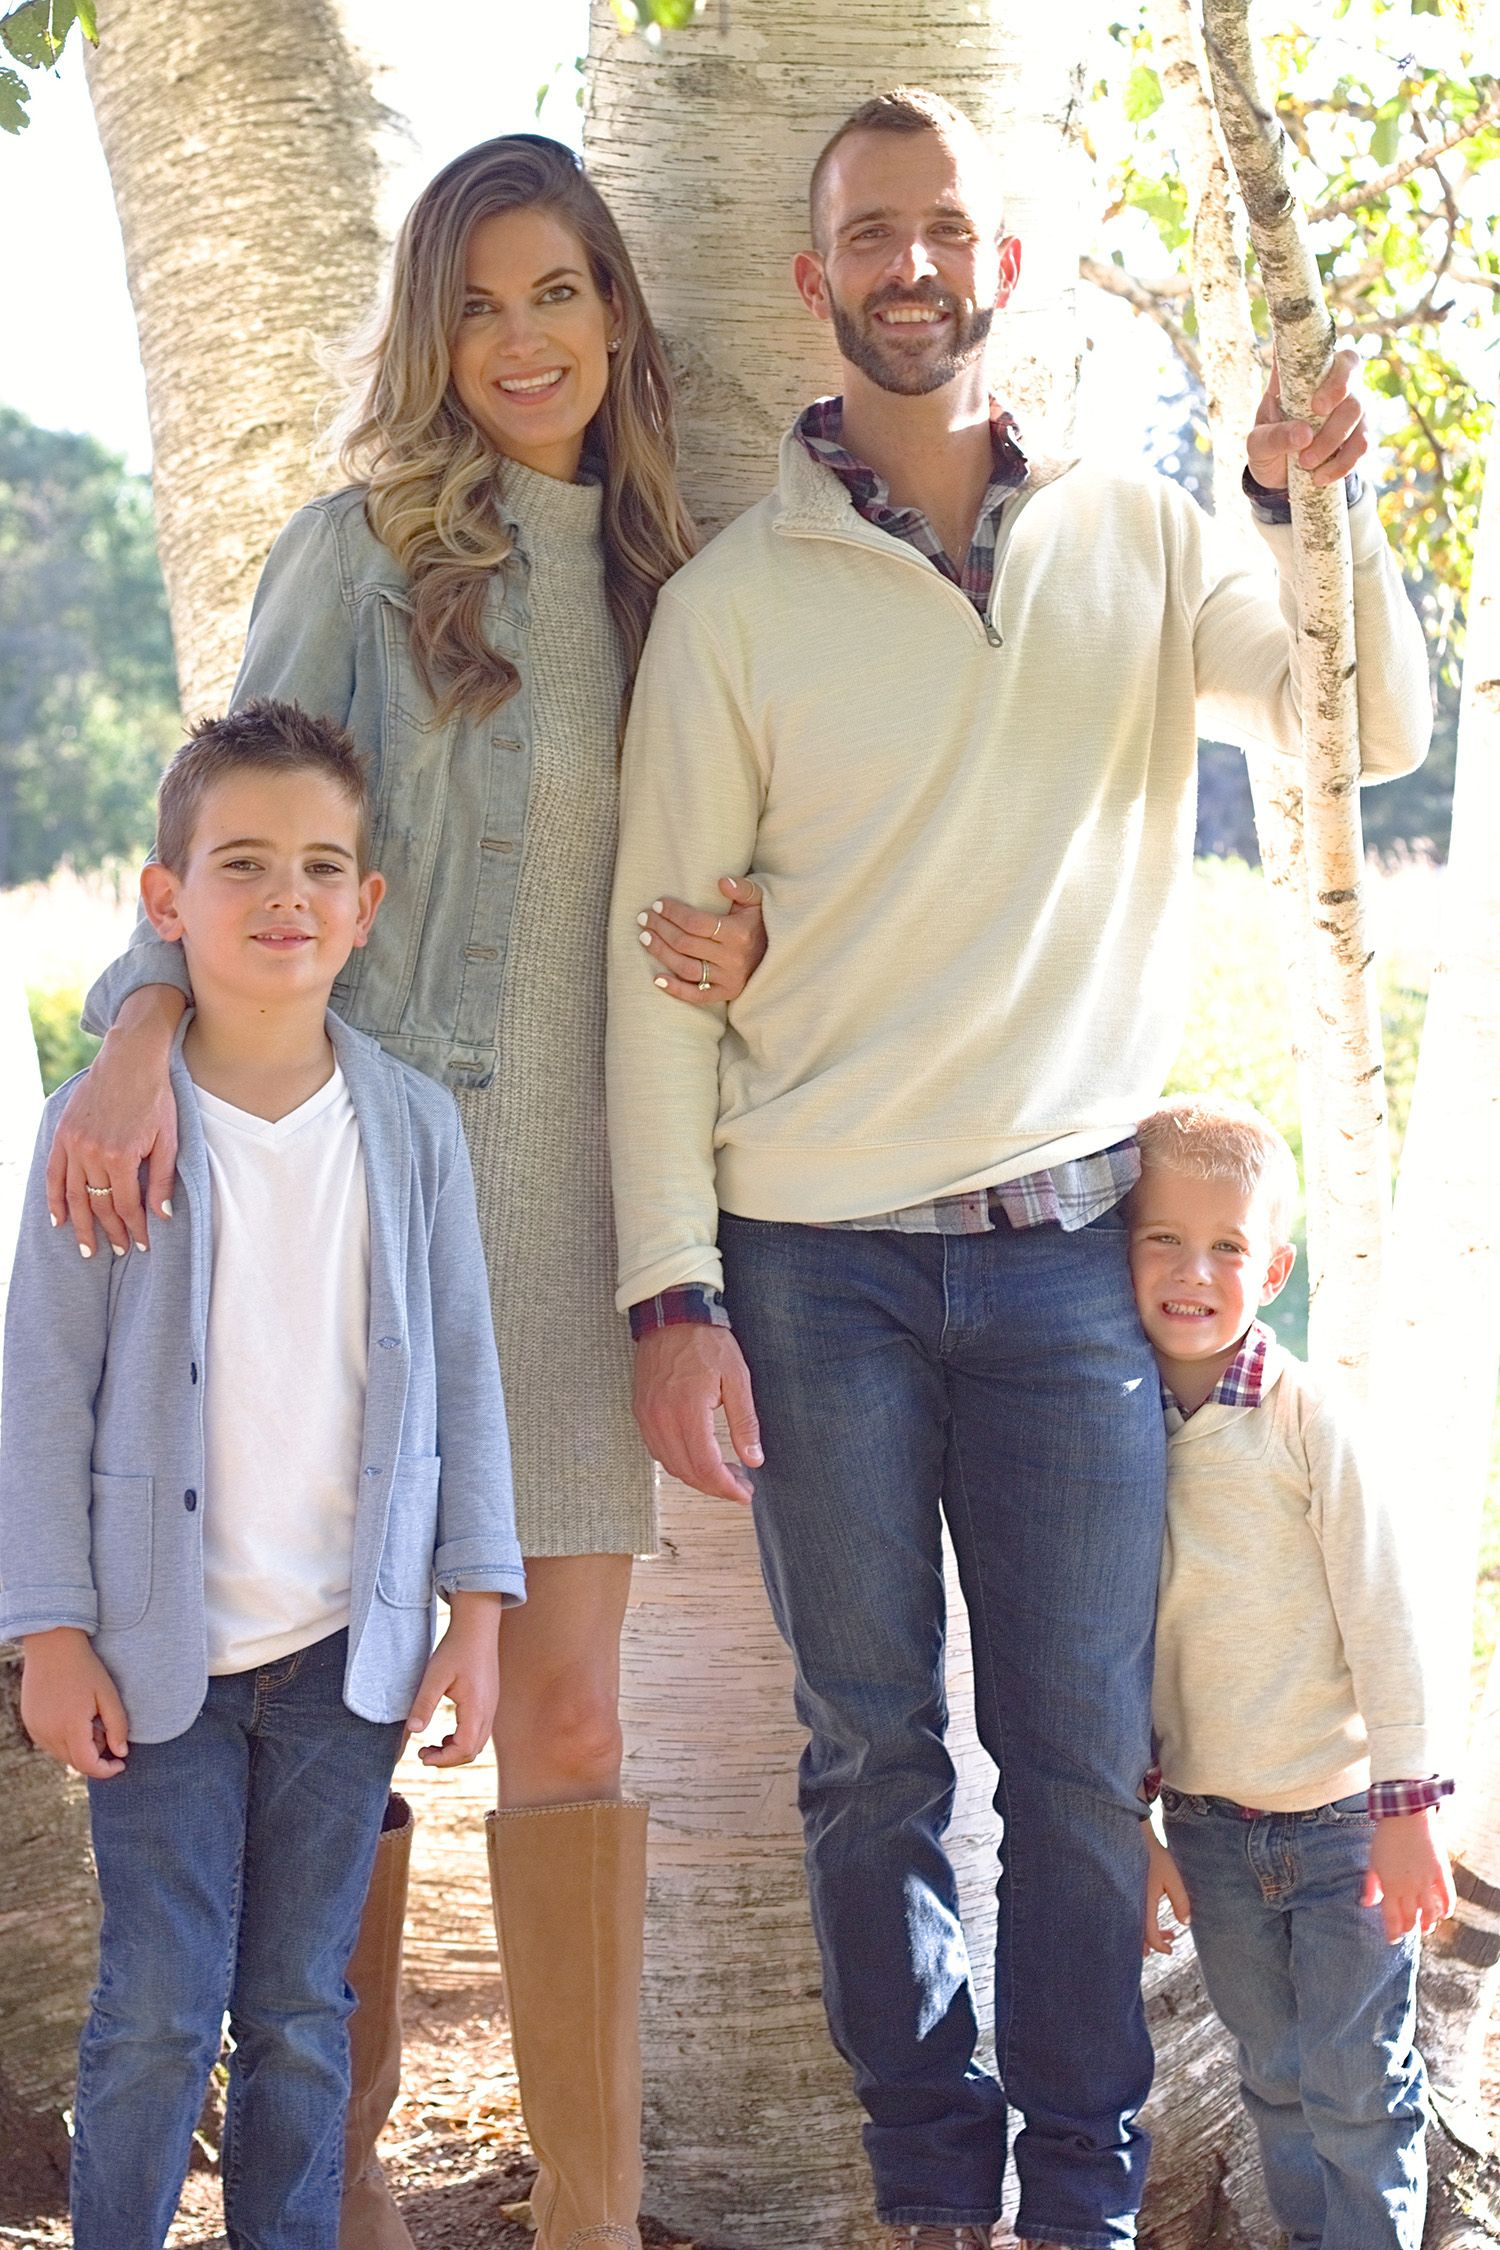 Fall Family Photo Outfit Ideas #familyphotooutfits